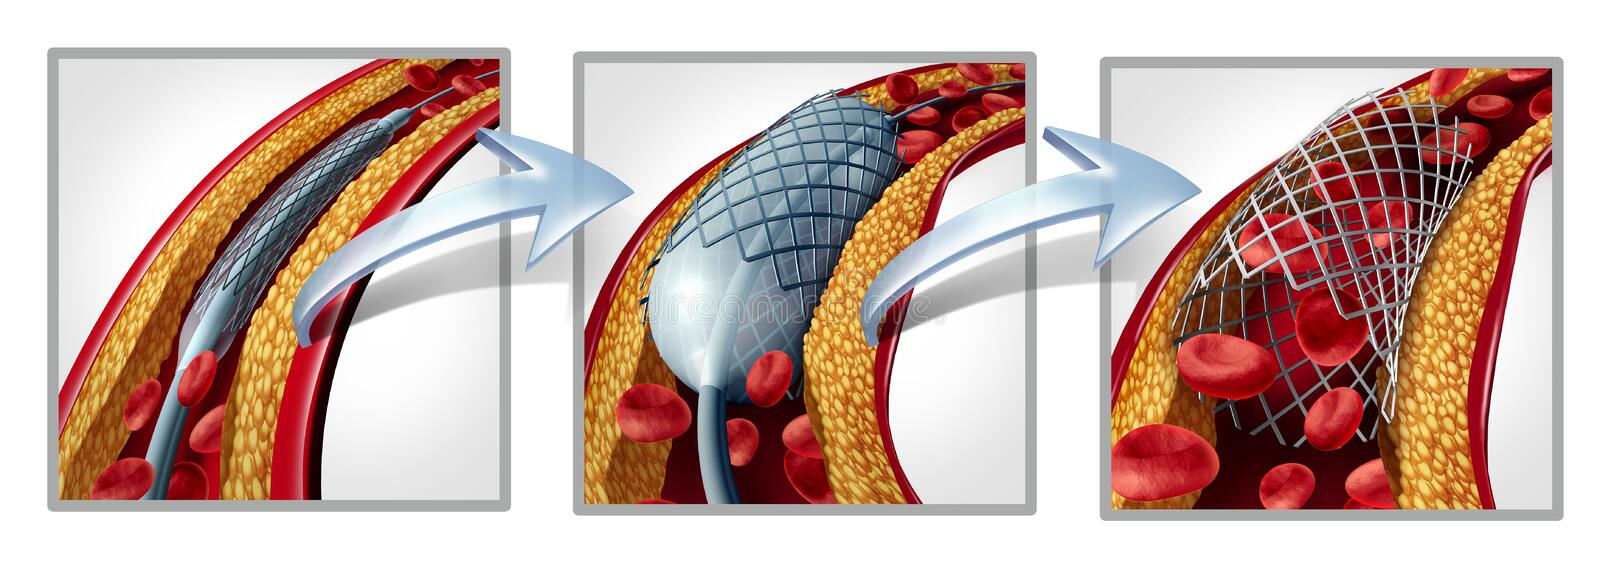 Coronary Stent Diagram. Coronary stent and angioplasty concept as a heart disease treatment symbol diagram with the stages of an implant procedure in an artery vector illustration